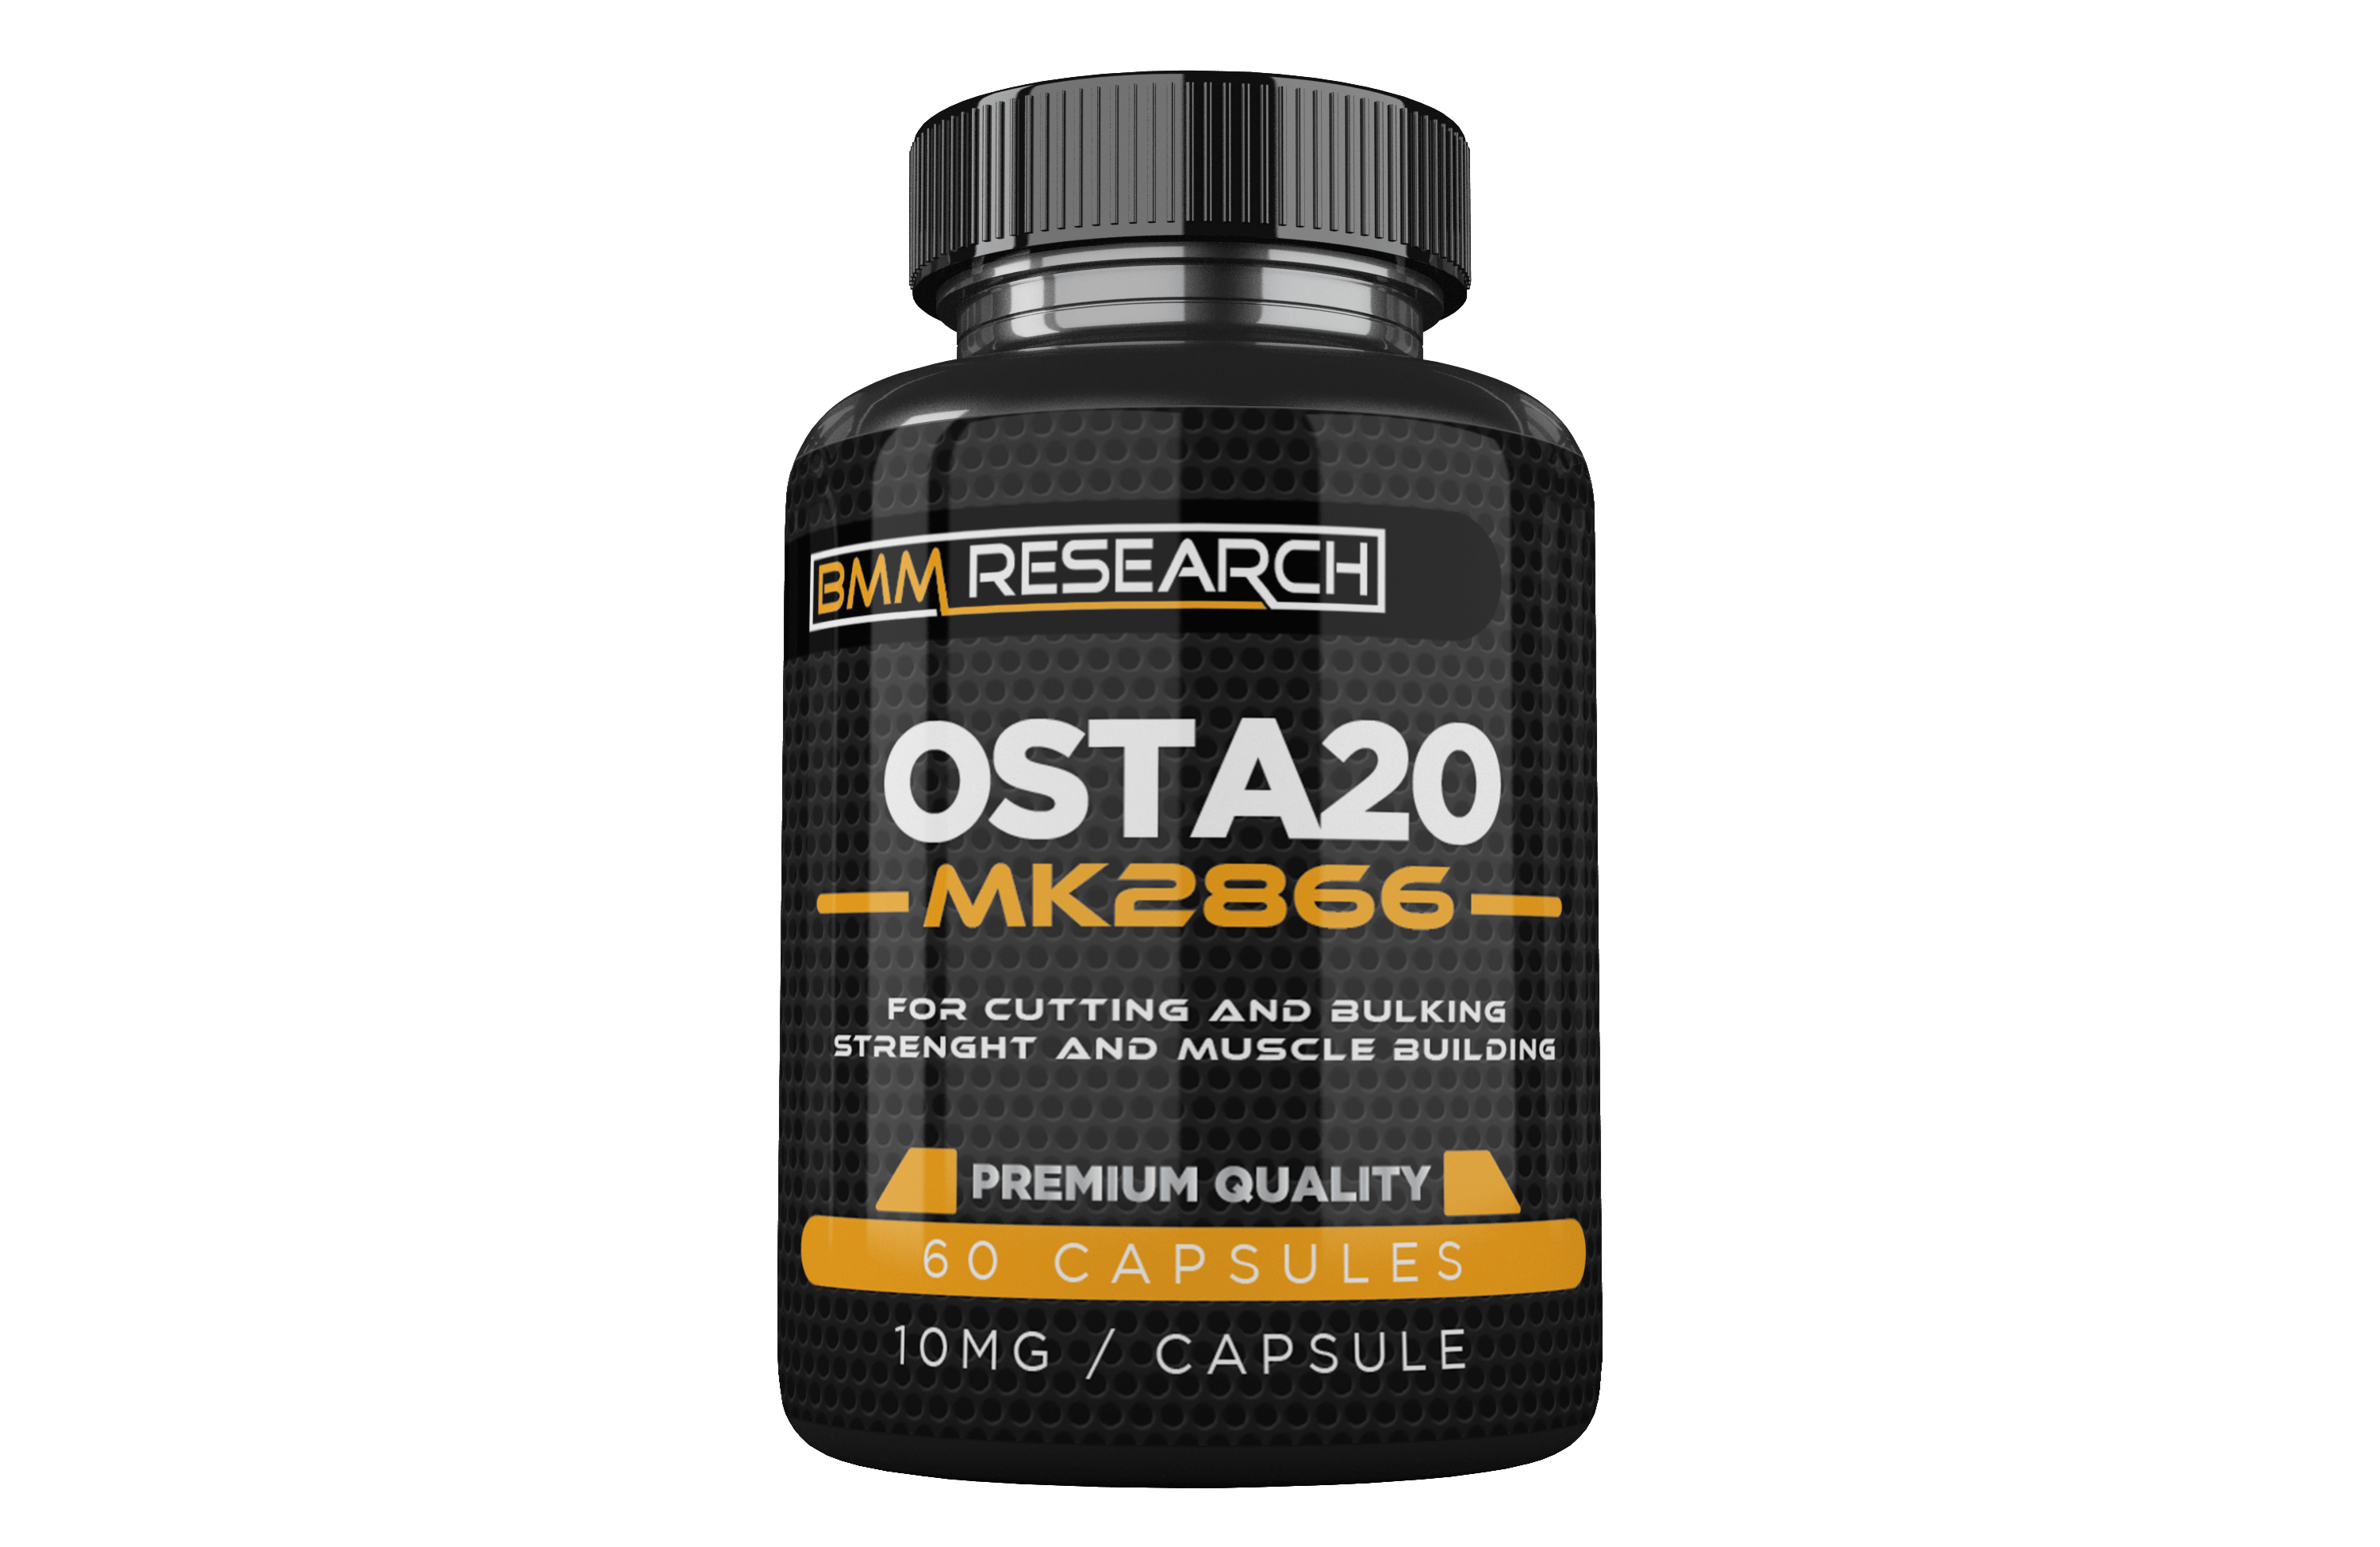 Ostarine MK2866 - For cutting and bulking strenght and muscle building